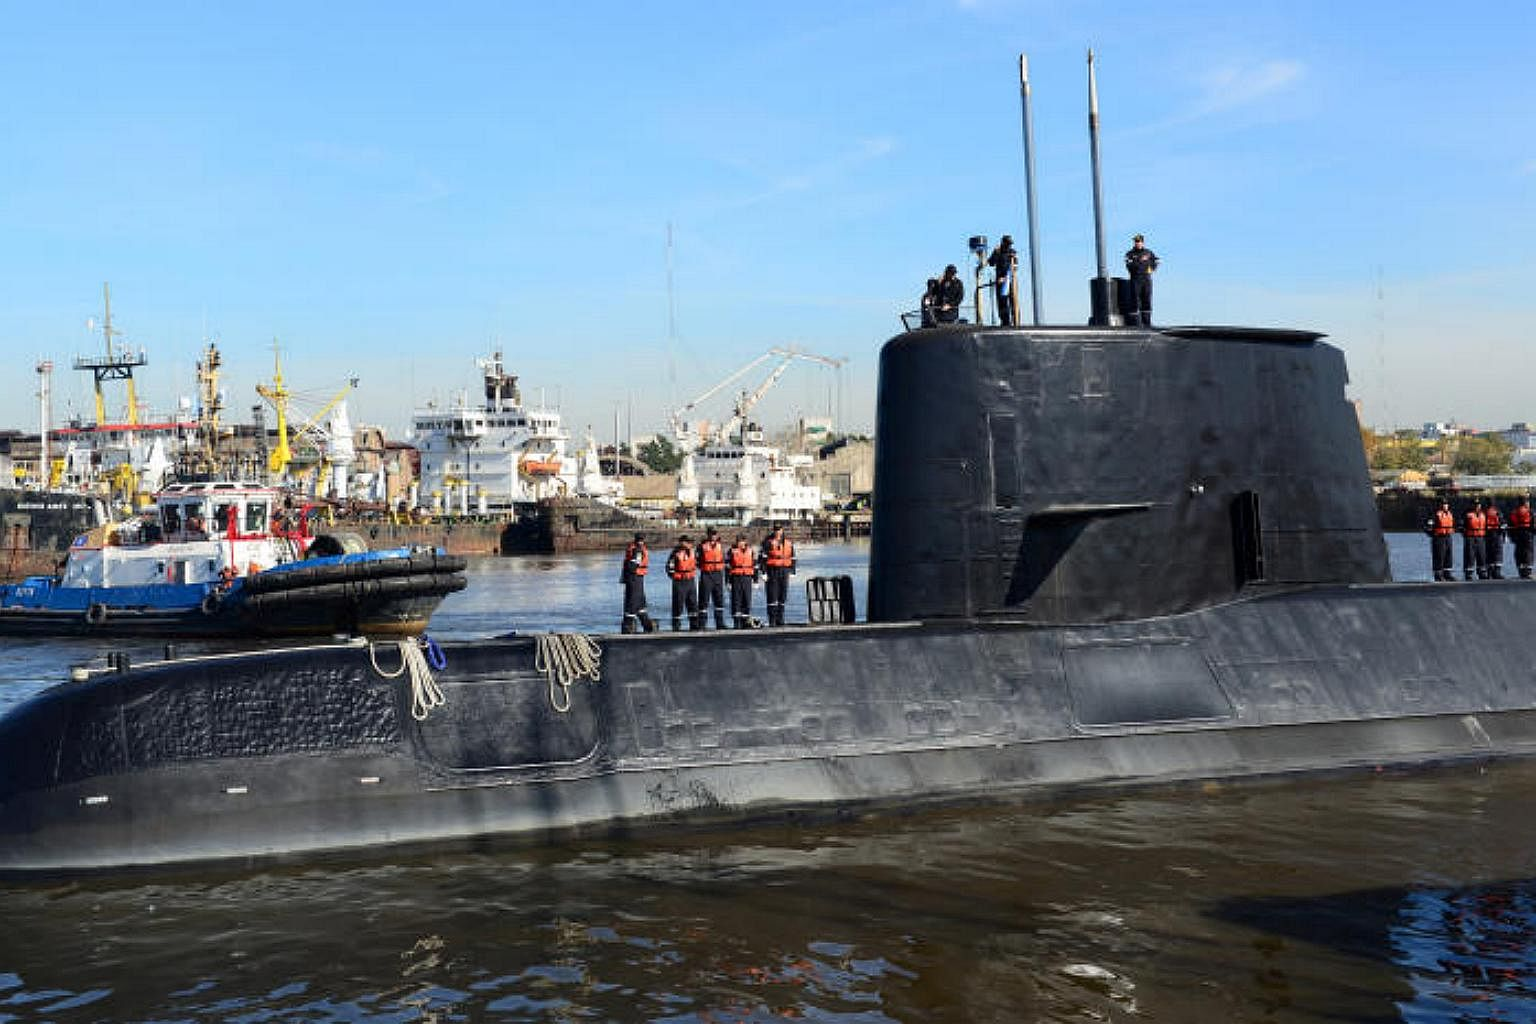 Argentine sub found partially 'imploded' after year-long search